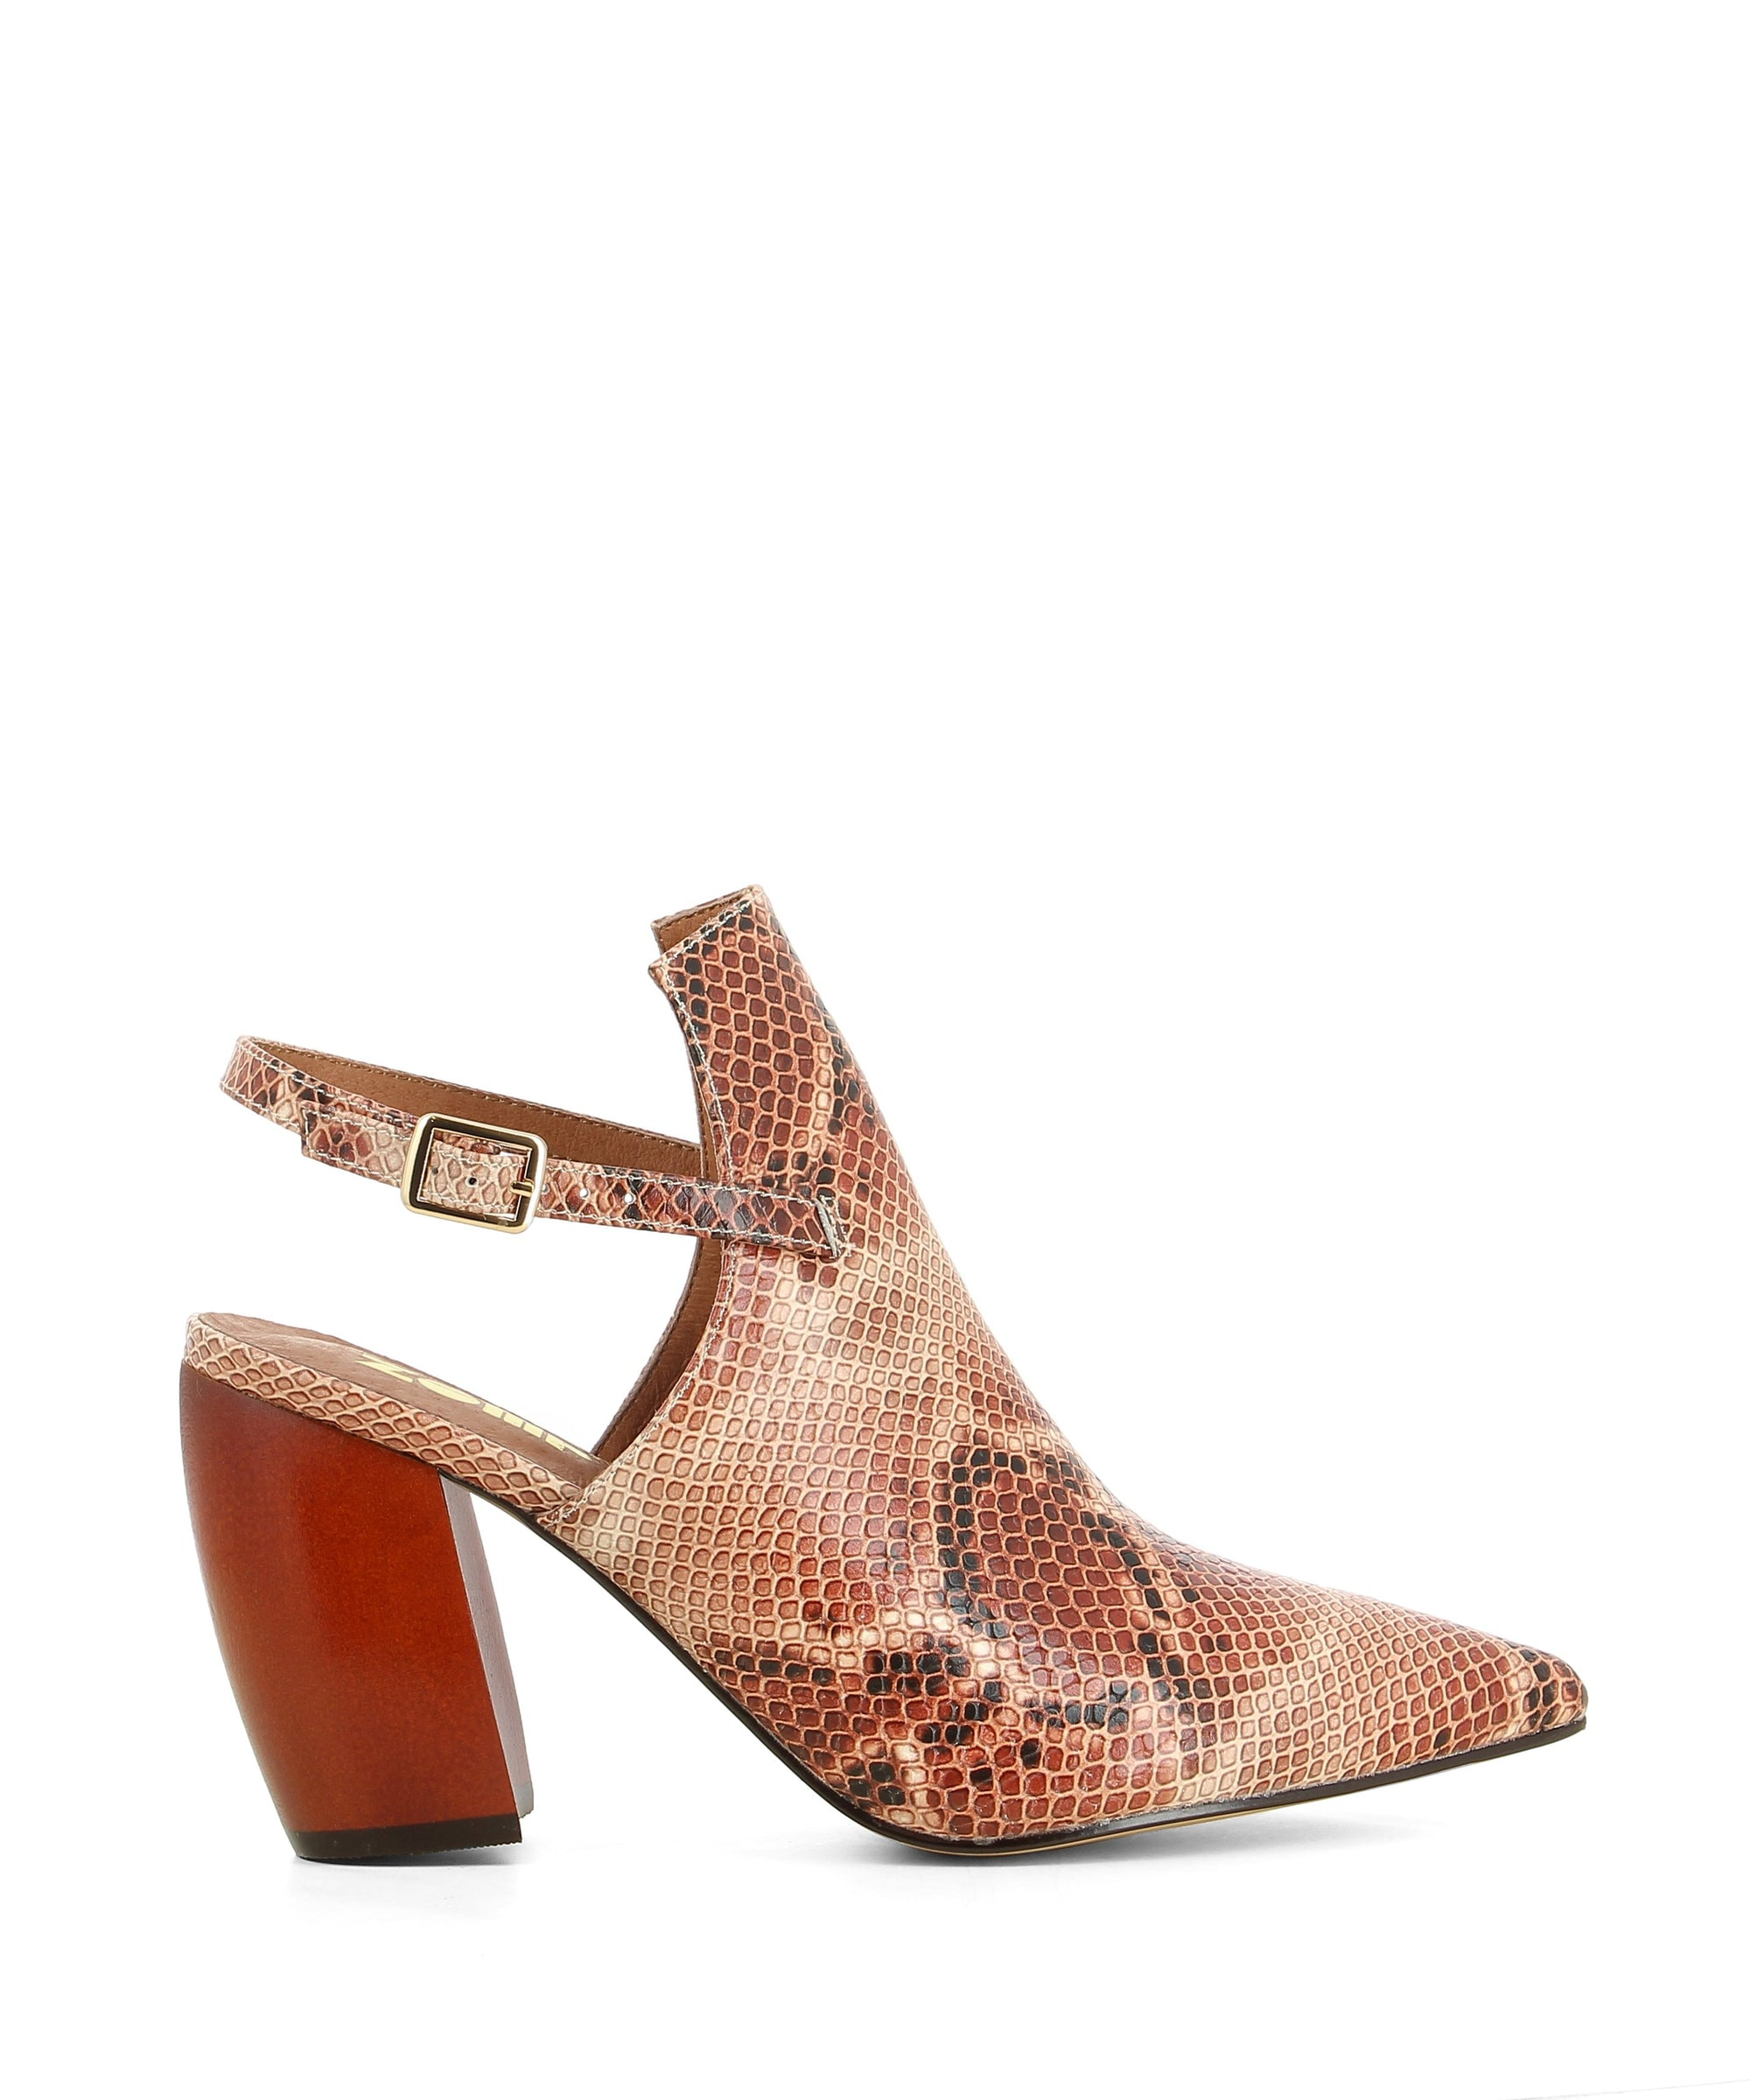 Tonal red snakeskin printed leather slingback heels that have a thin slingback strap with buckle fastening and features a snakeskin textured upper, a 8.5 cm red block banana heel and a closed in pointed toe by Zomp.